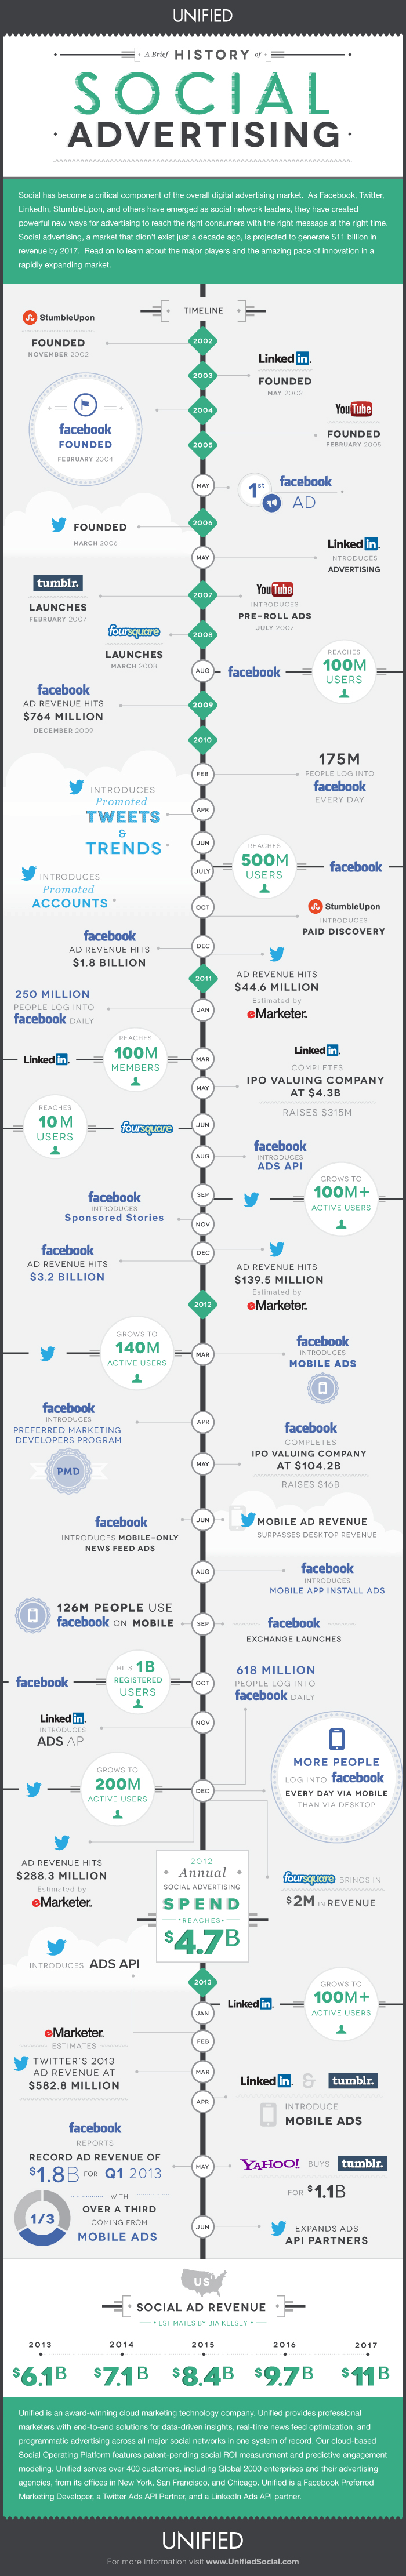 Getting Started With Social Advertising - Infographic